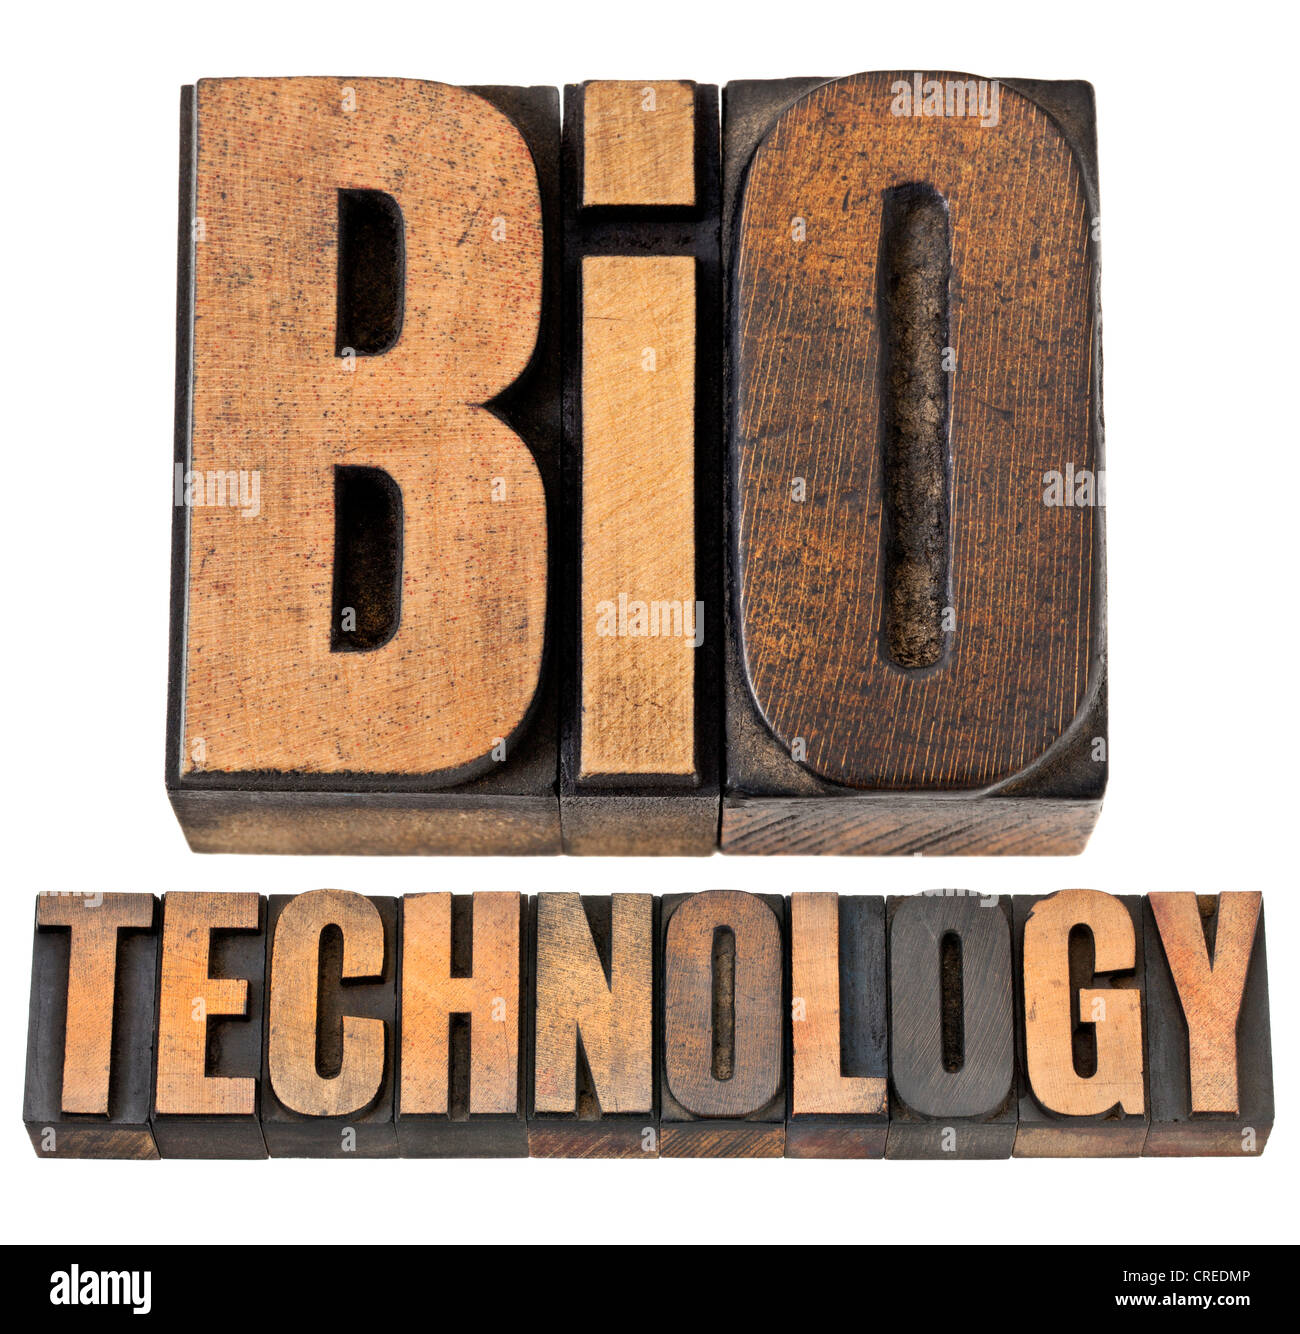 biotechnology - biotech concept - isolated text in vintage letterpress wood type - Stock Image